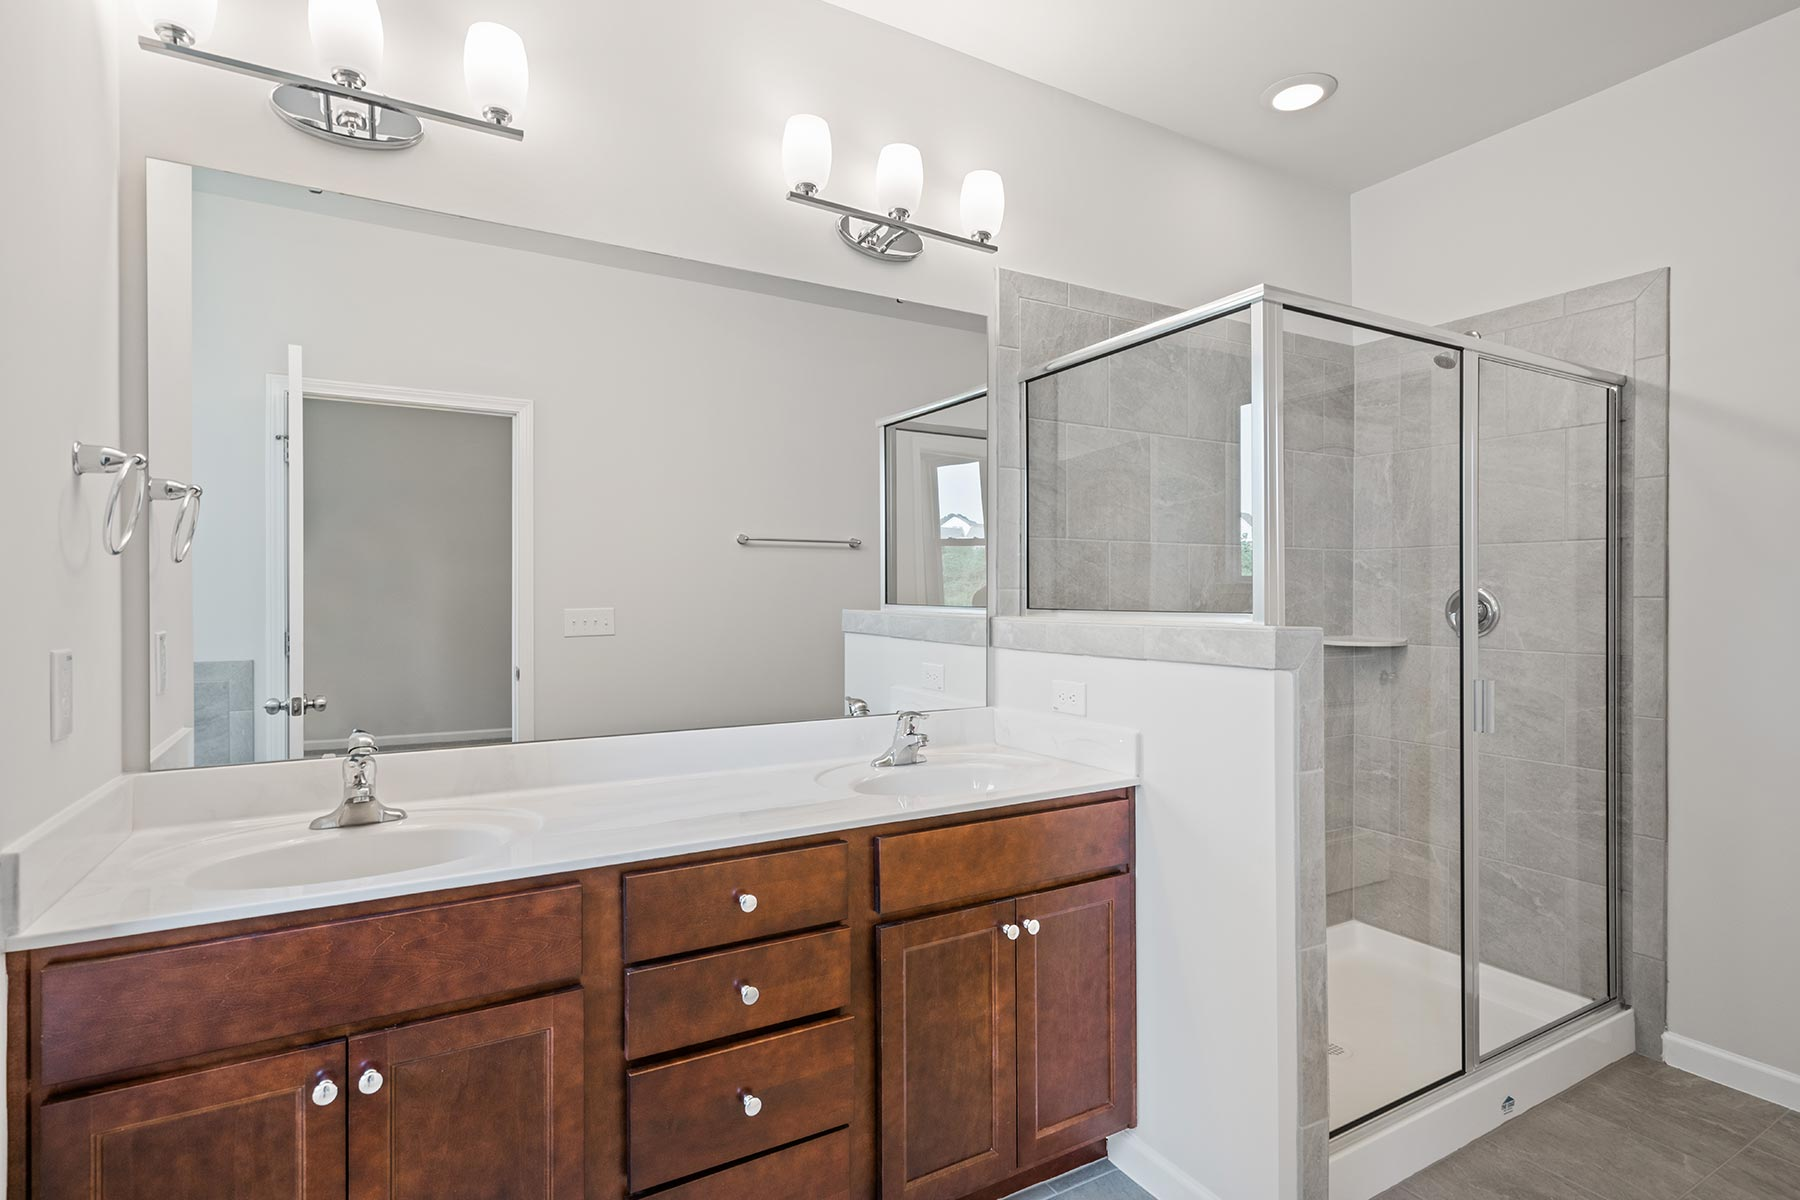 Winston Plan Bathroom_Master Bath at Ballentine Place in Holly Springs North Carolina by Mattamy Homes